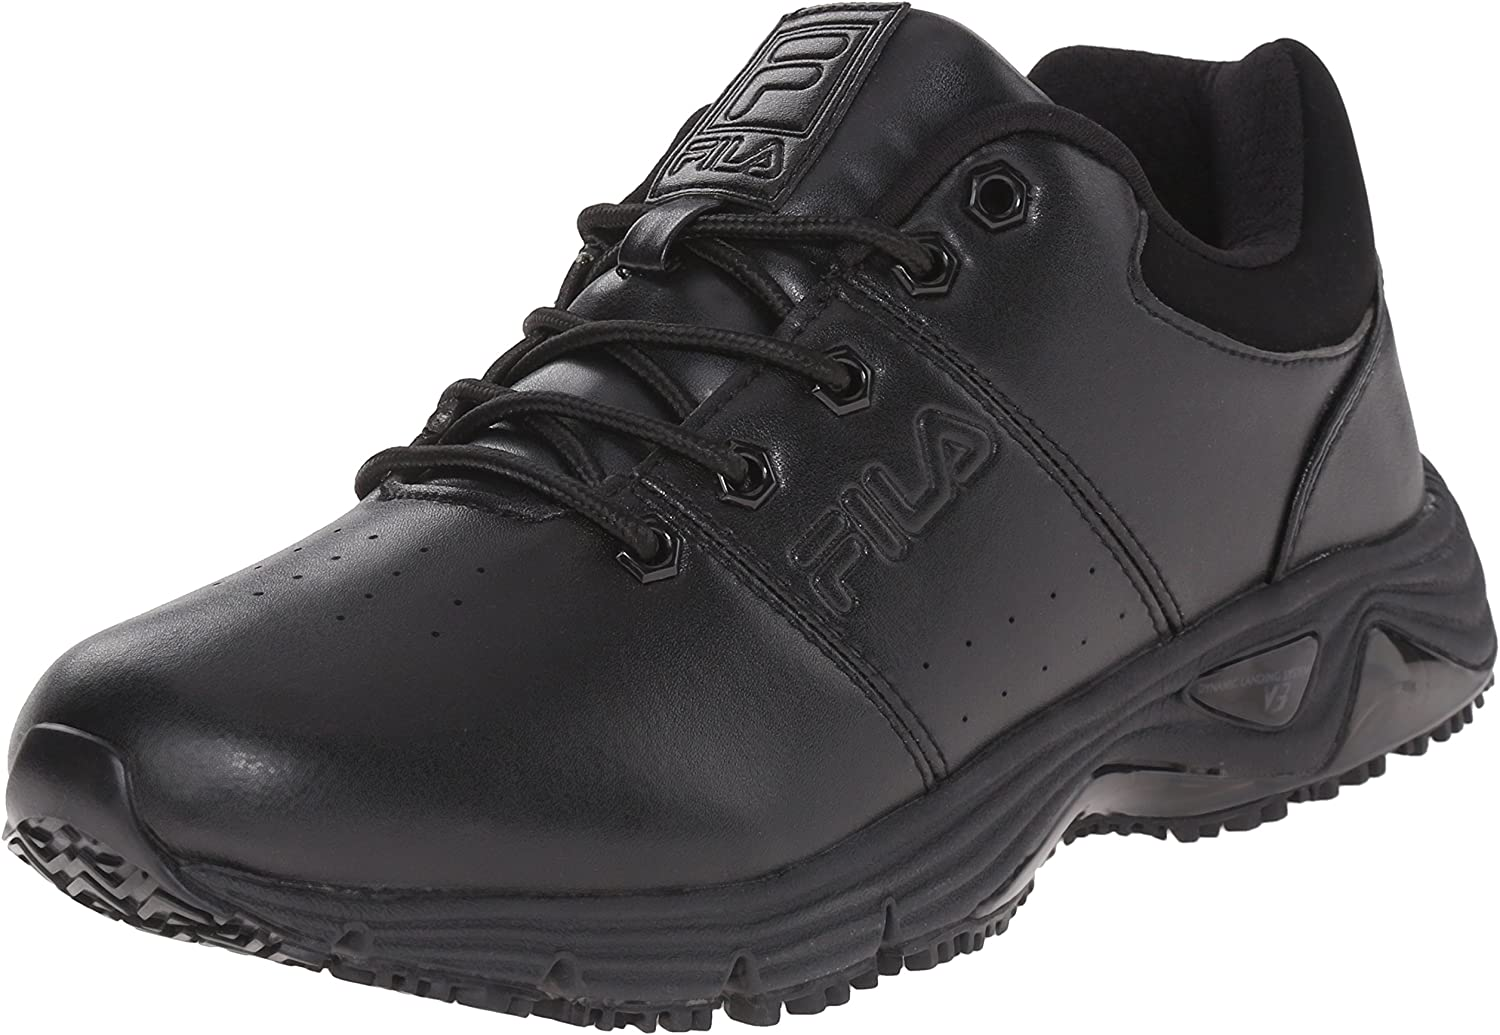 Fila Men's Memory Breach Sr Low Slip Resistant Work shoes